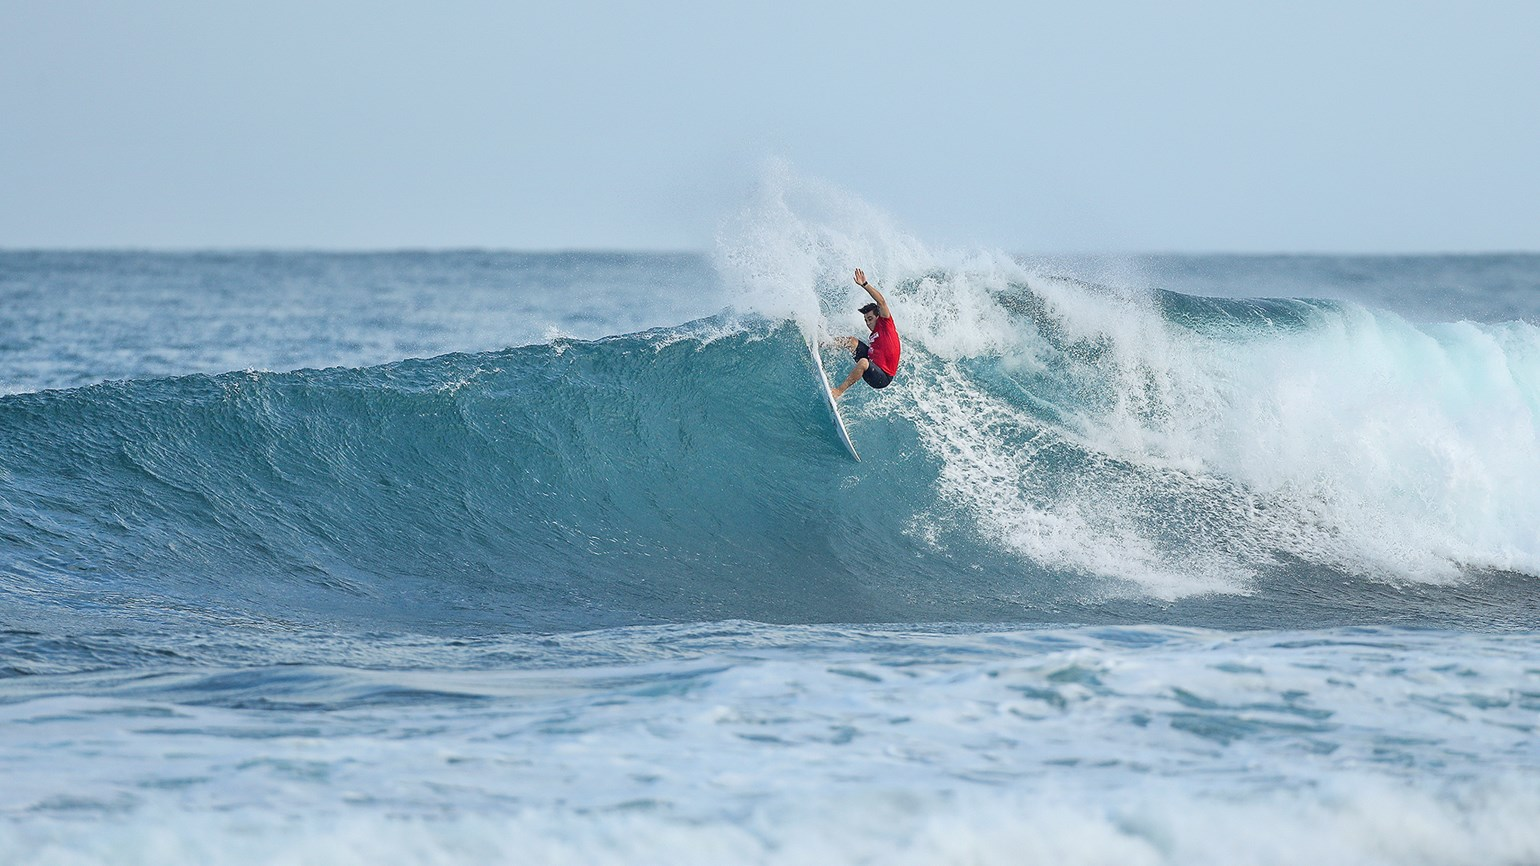 Oahu surf contests back for big wave season